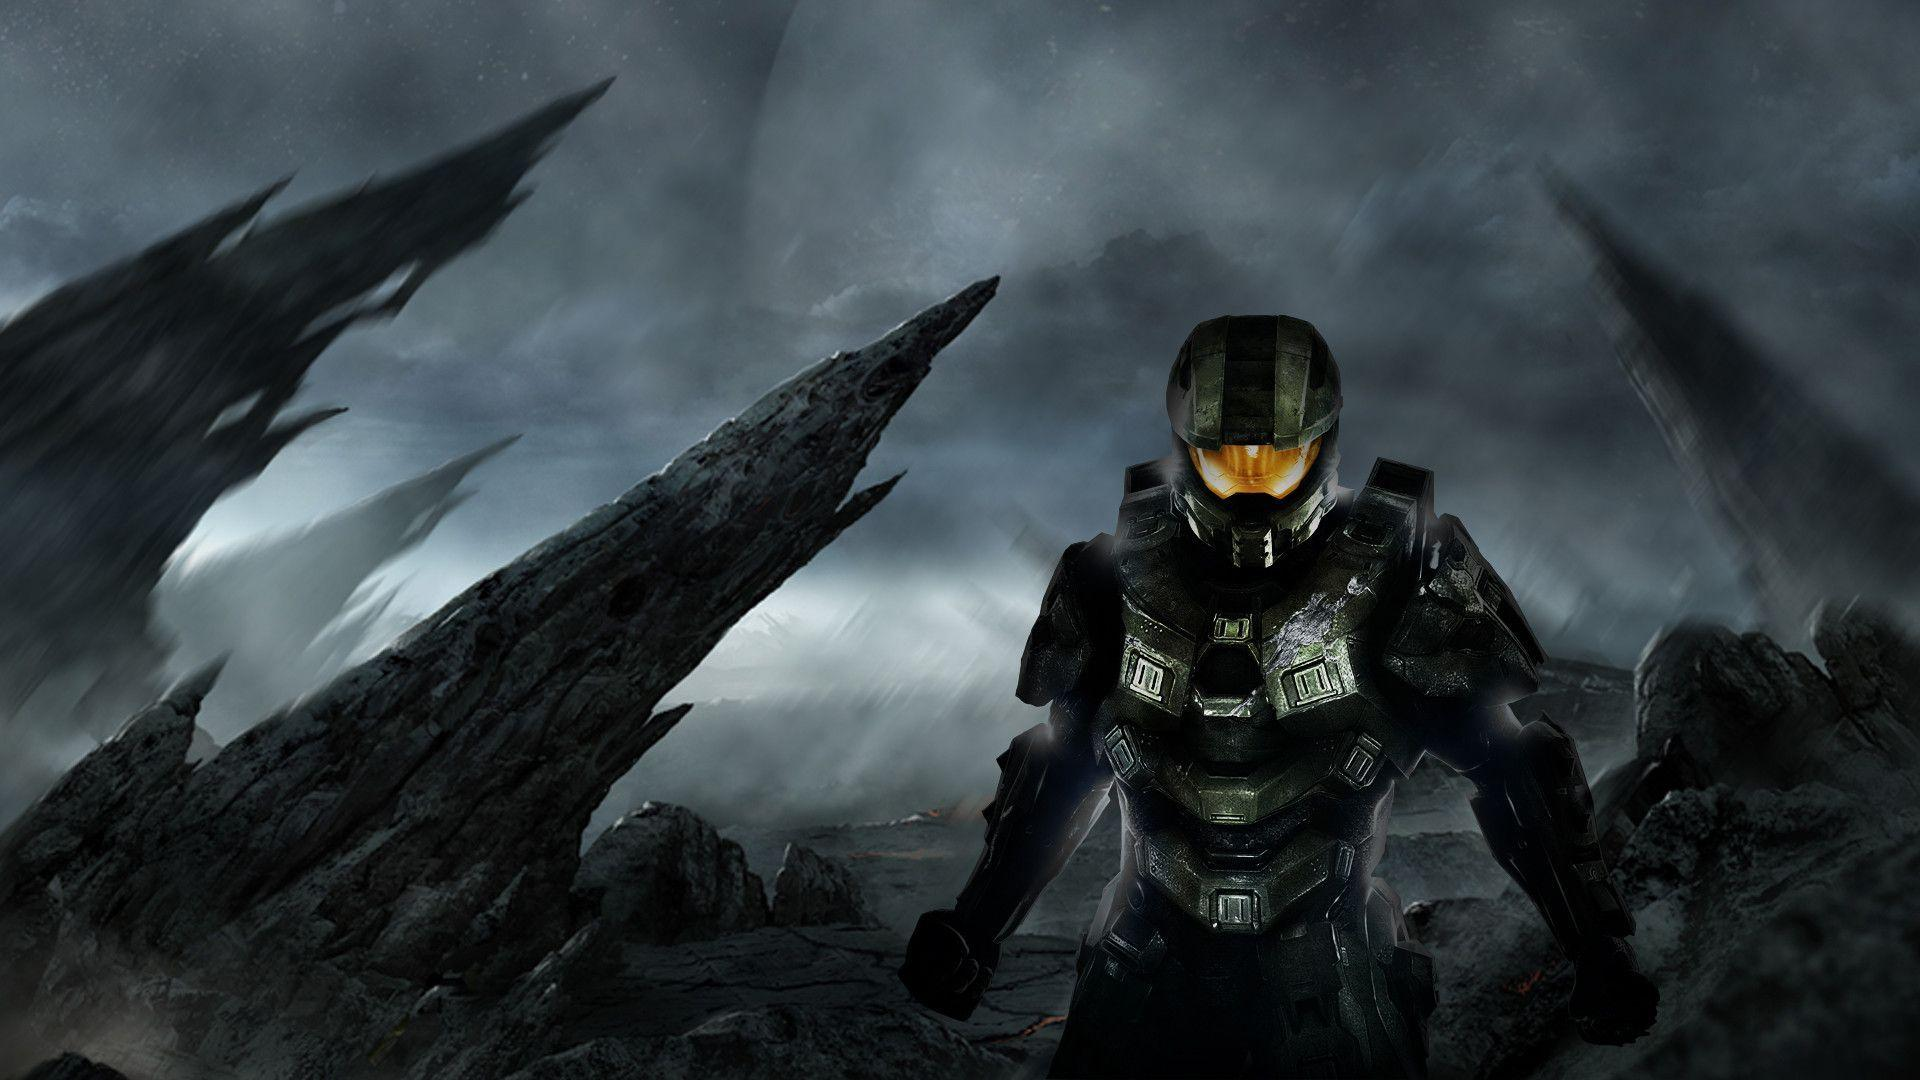 wallpaper free game halo - photo #39